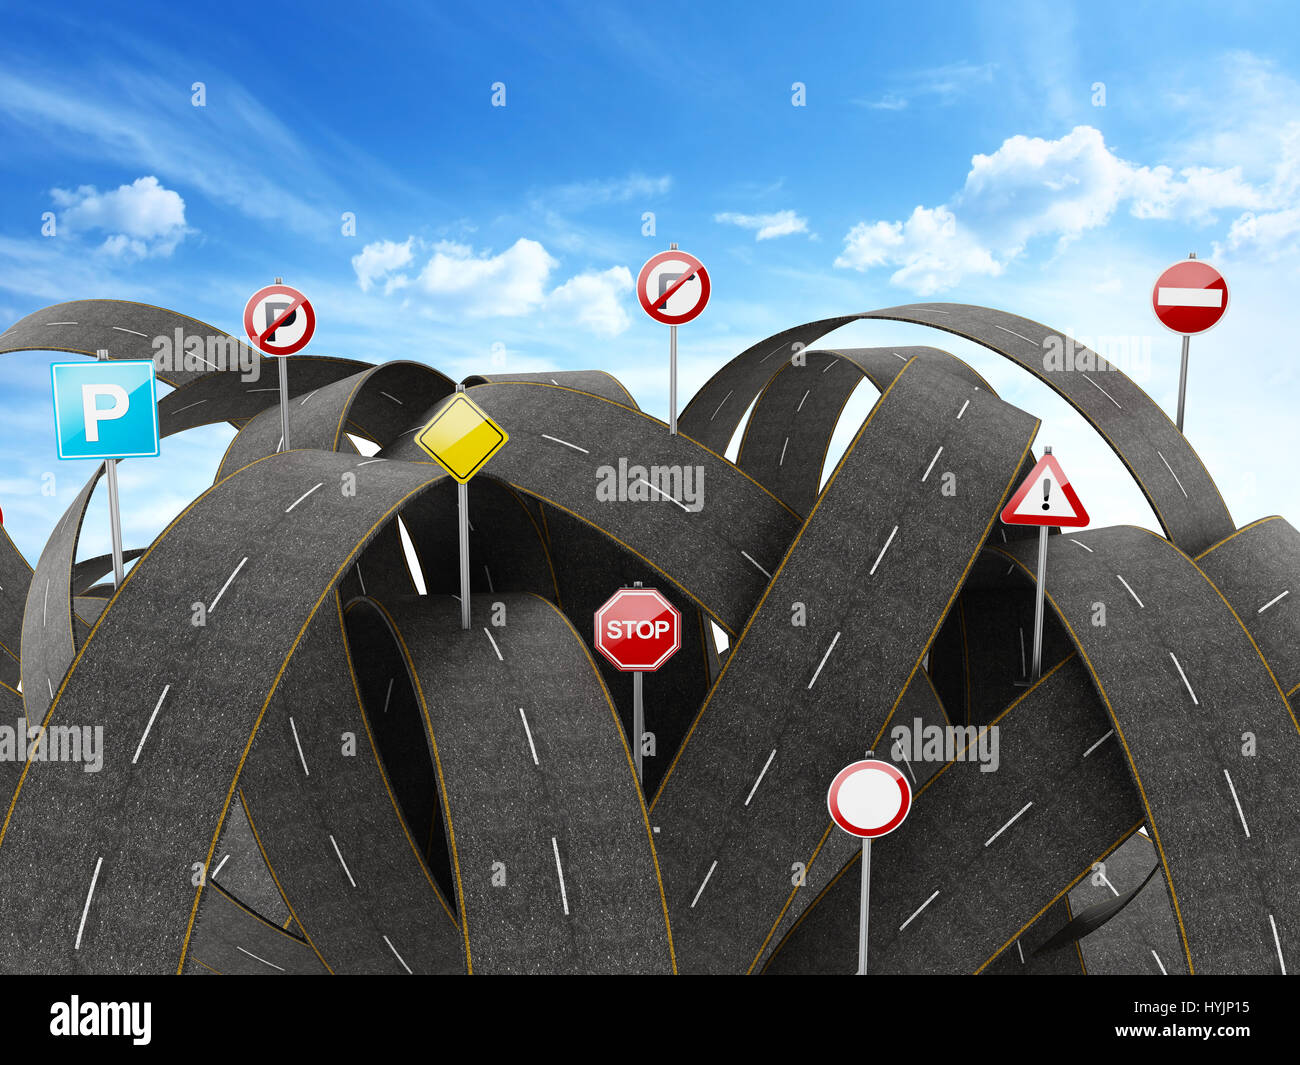 Tangled, crowded, chaotic roads and many traffic signs. 3D illustration - Stock Image